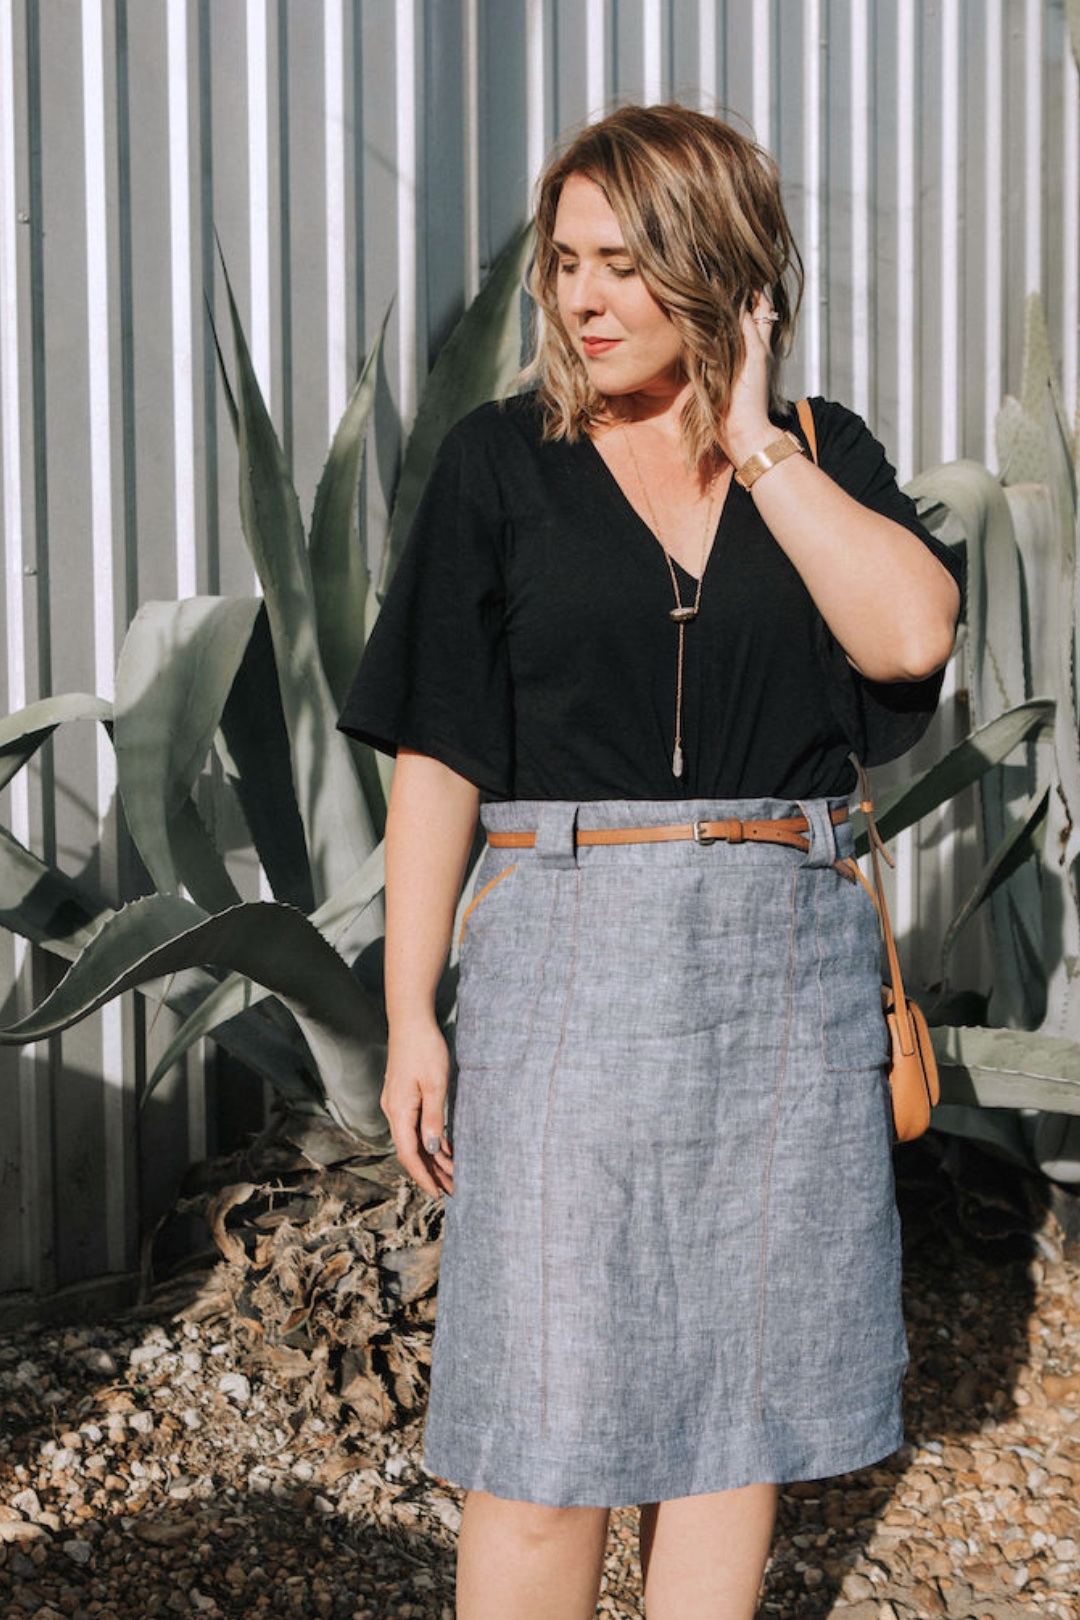 Stella Skirt sewing pattern from Sew to Grow